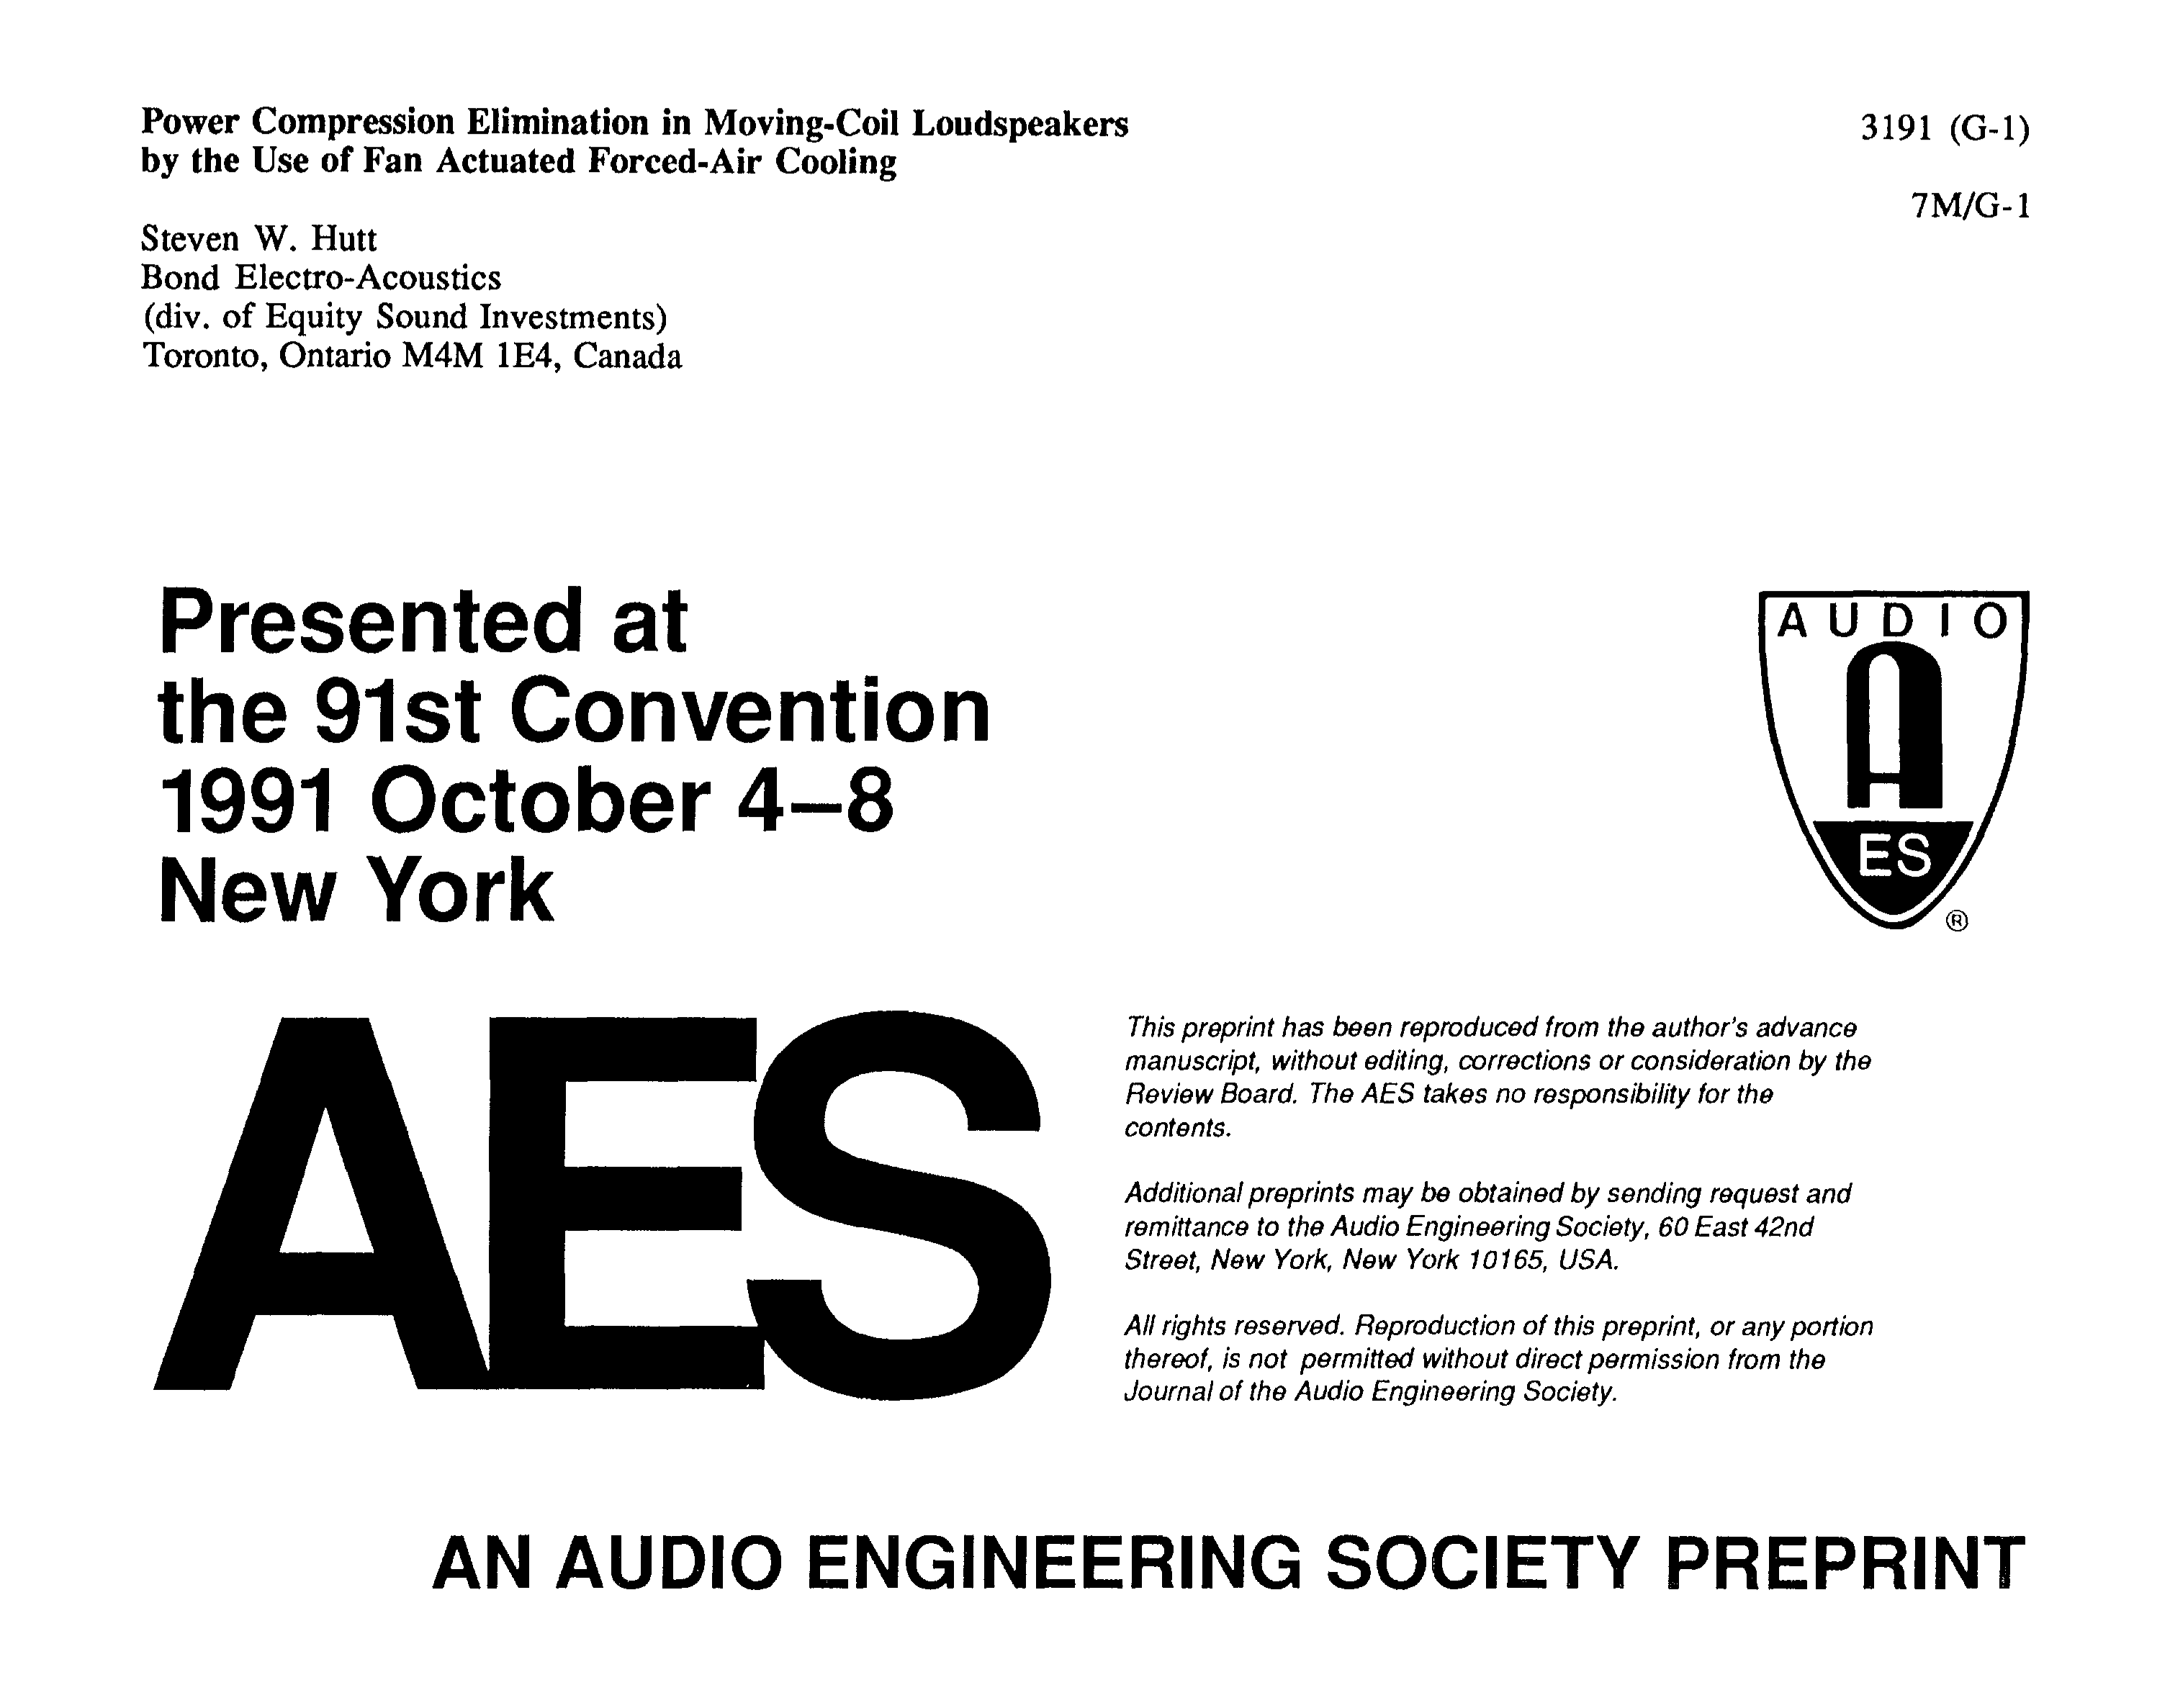 Aes E Library Power Compression Elimination In Moving Coil Circuit Compact Without Generating Heat As Capacitor C1 Dissipates Loudspeakers By The Use Of Fan Actuated Forced Air Cooling